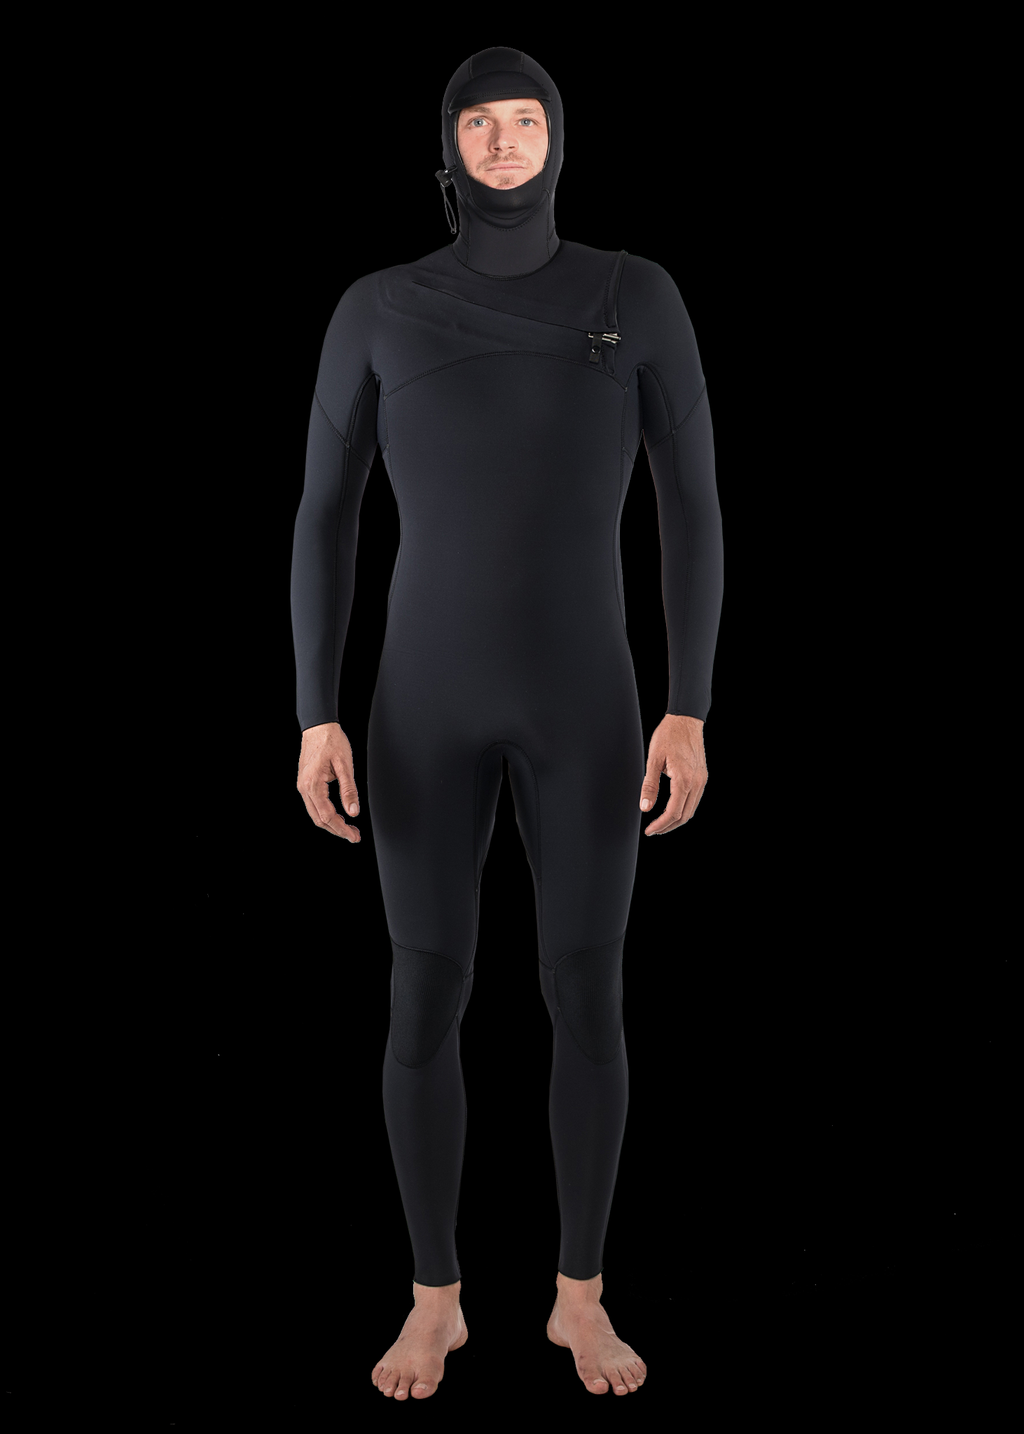 Mens 5/4 Premium Hooded Thermal Chest Zip Wetsuit